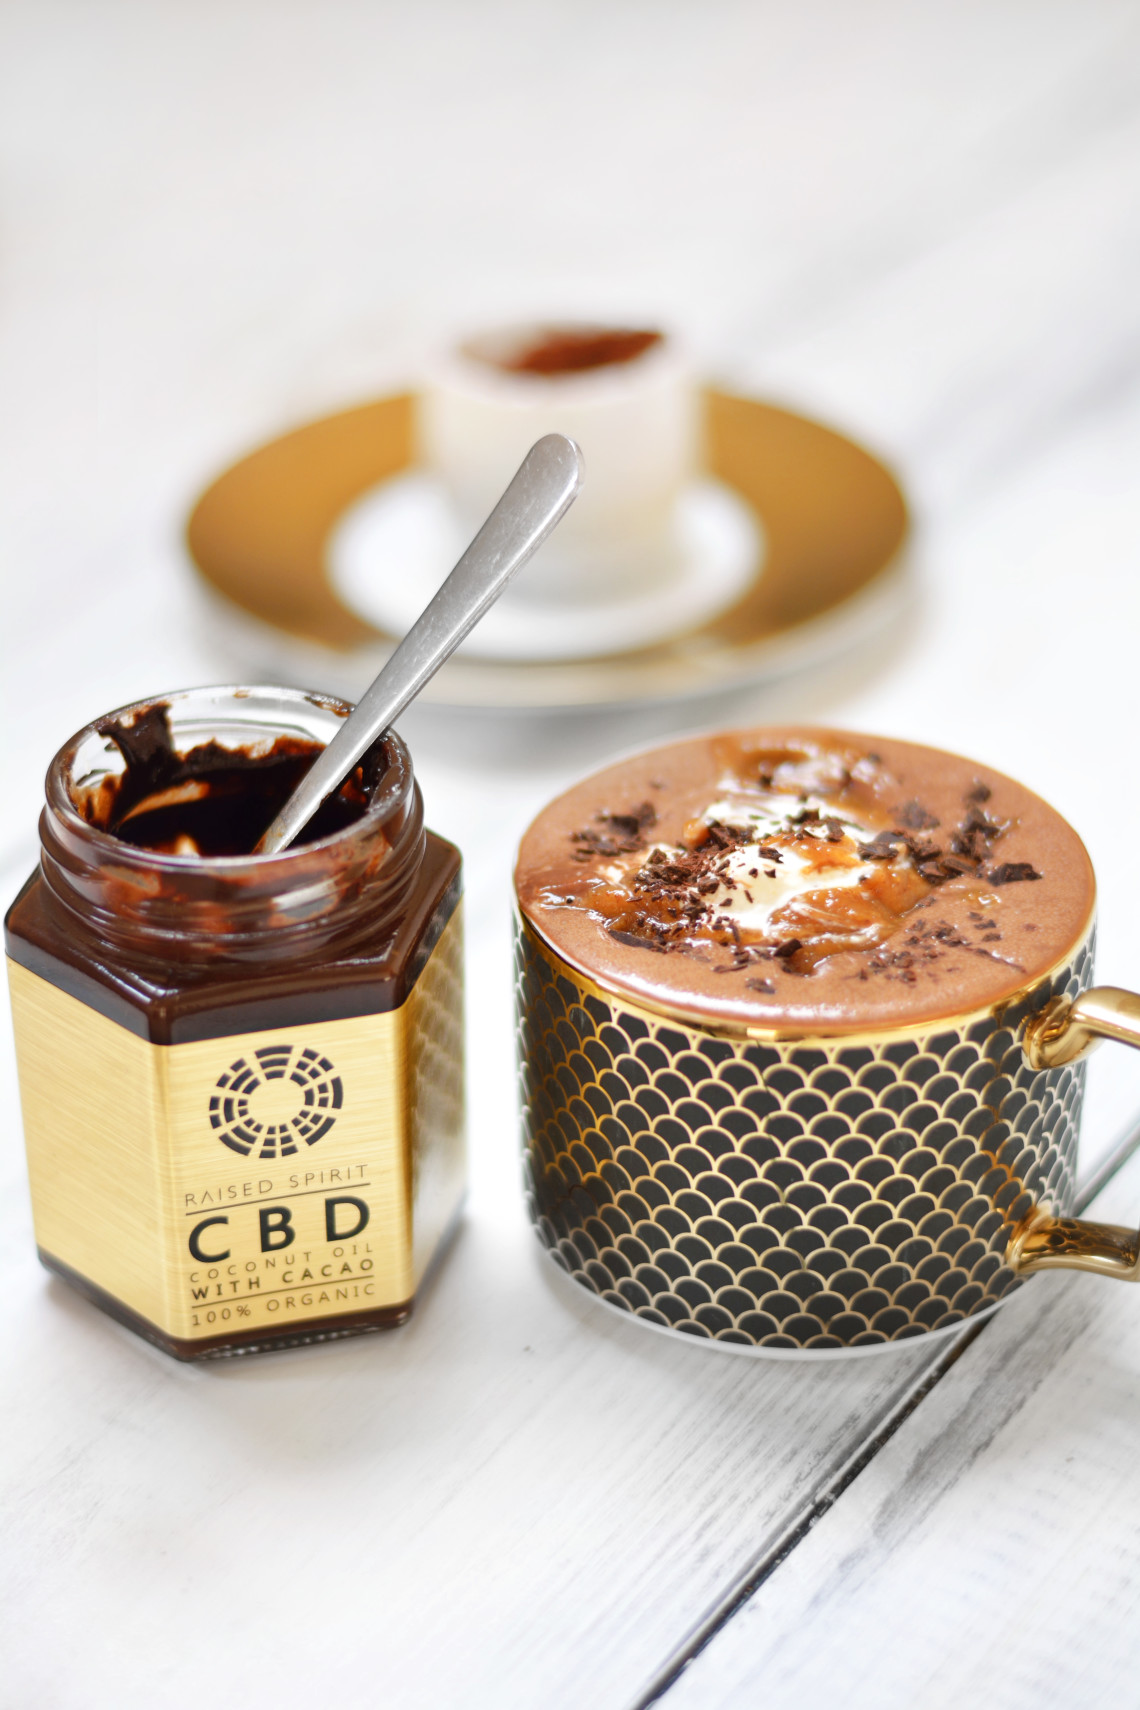 peanut-butter-cbd-hot-chocolate-paleo-vegan-7